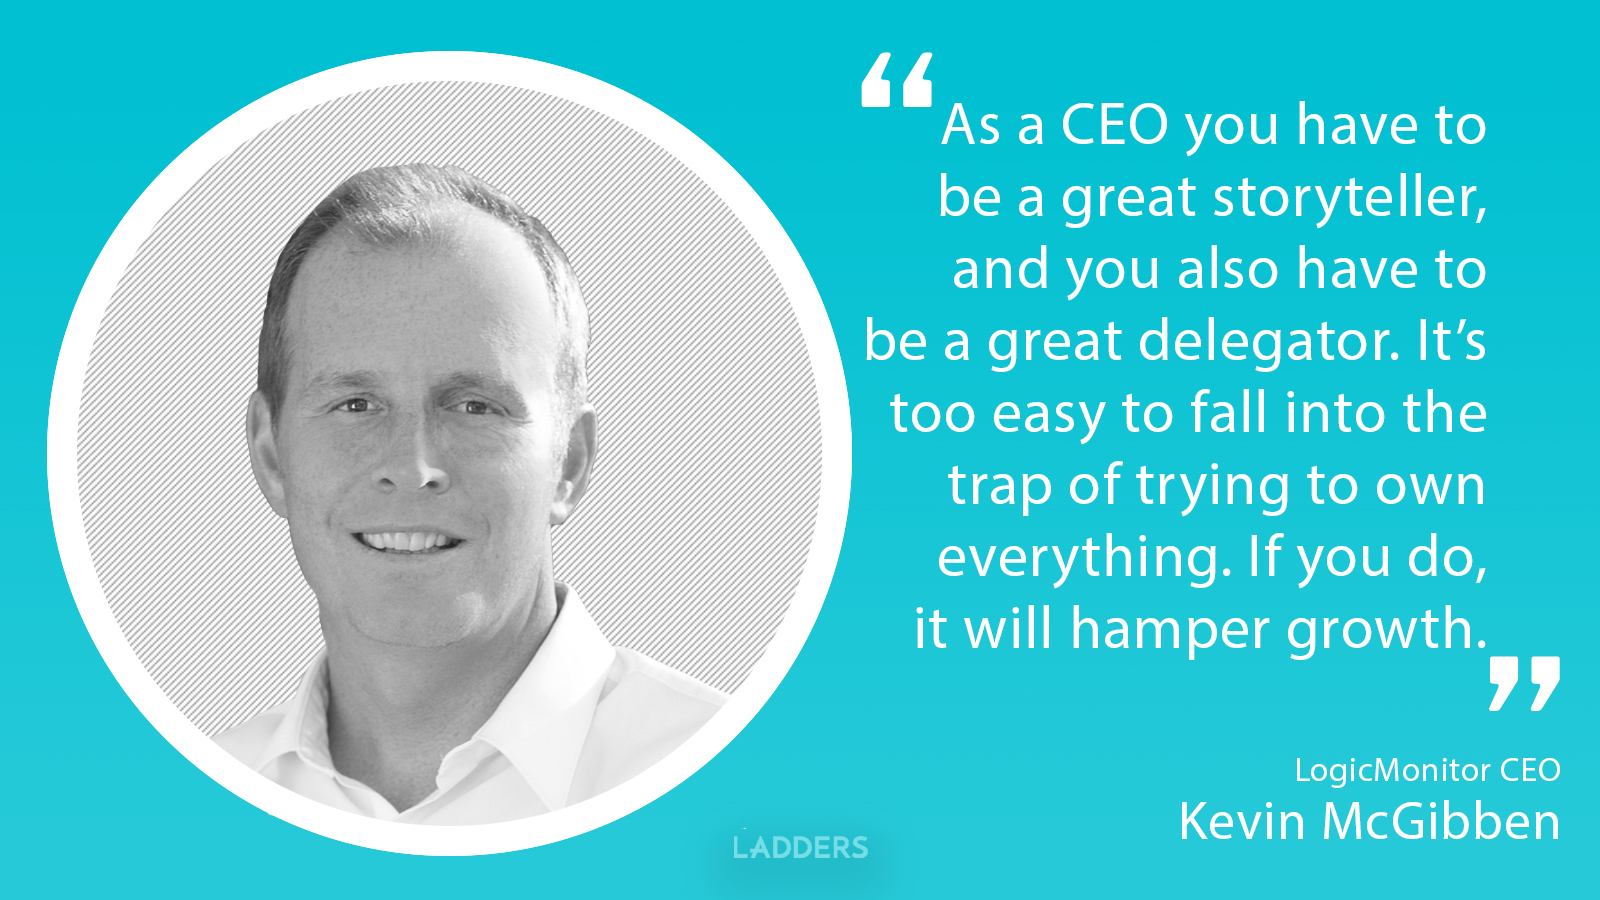 LogicMonitor CEO Kevin McGibben on the trap leaders fall into